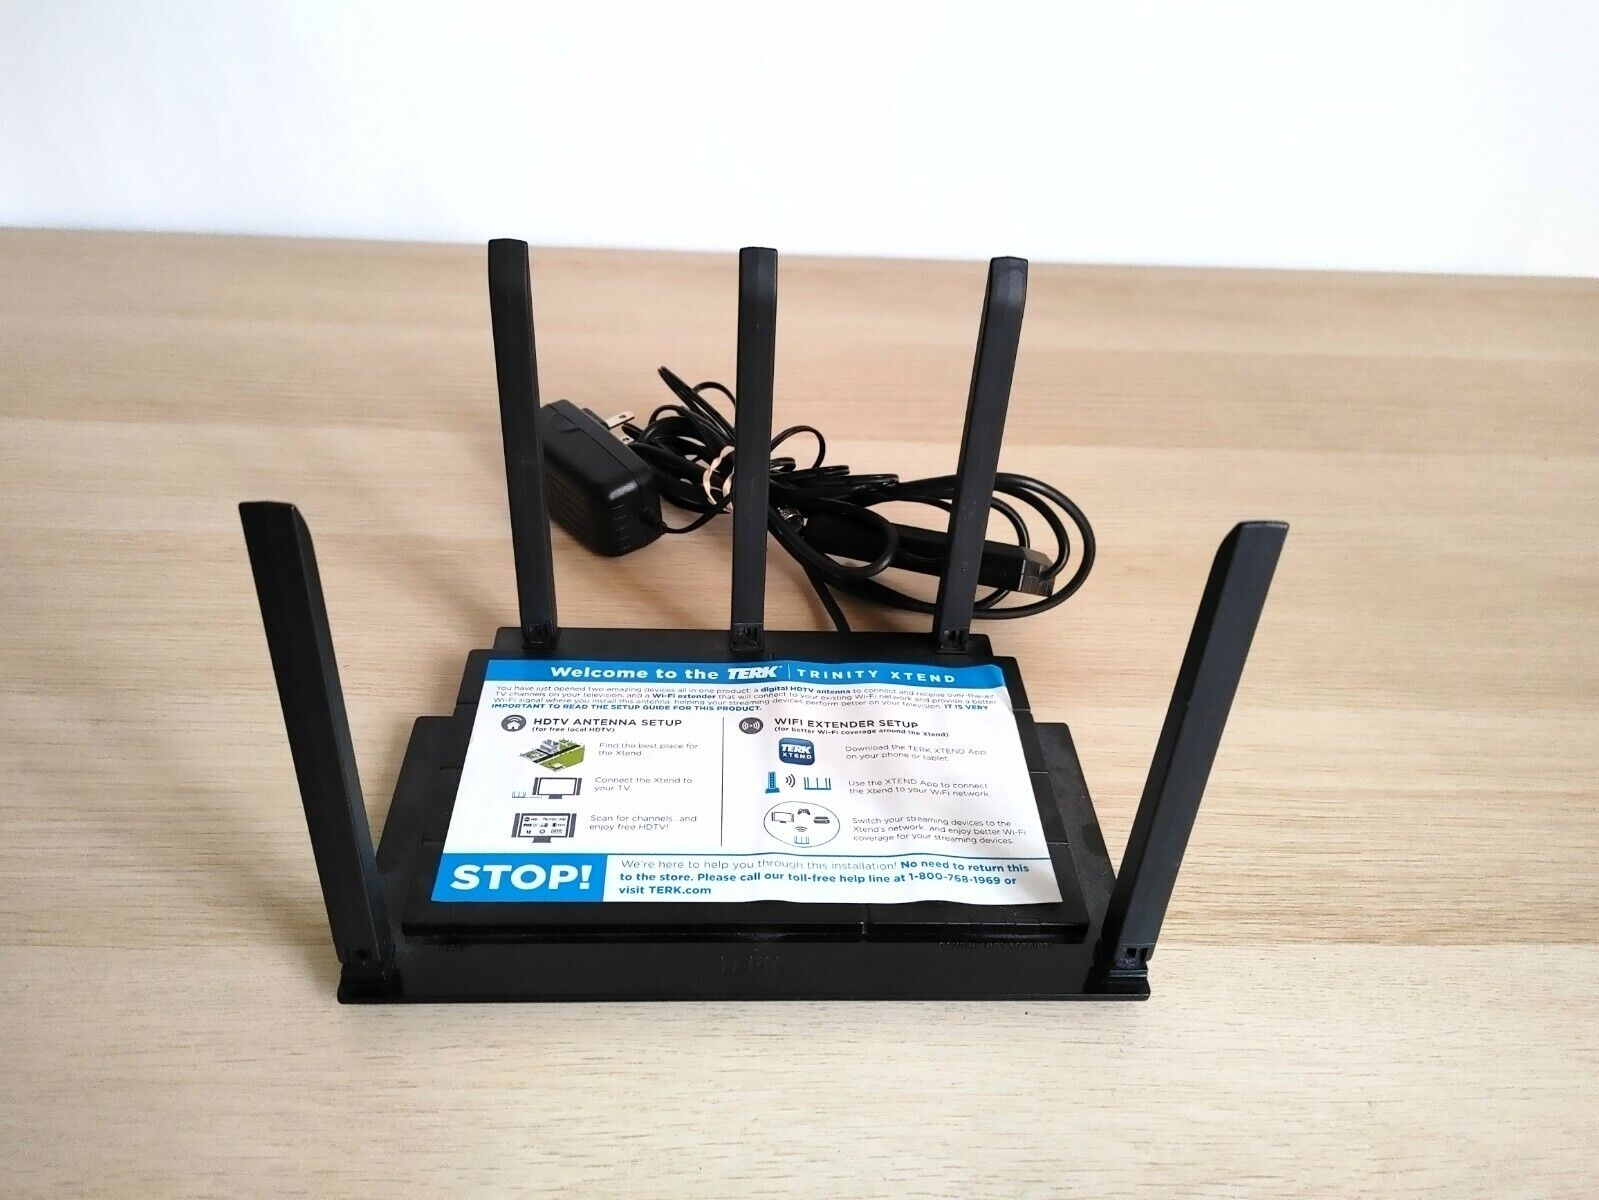 Terk Trinity xtend Amplified Indoor HDTV Antenna With WiFi Extender. Available Now for 34.99